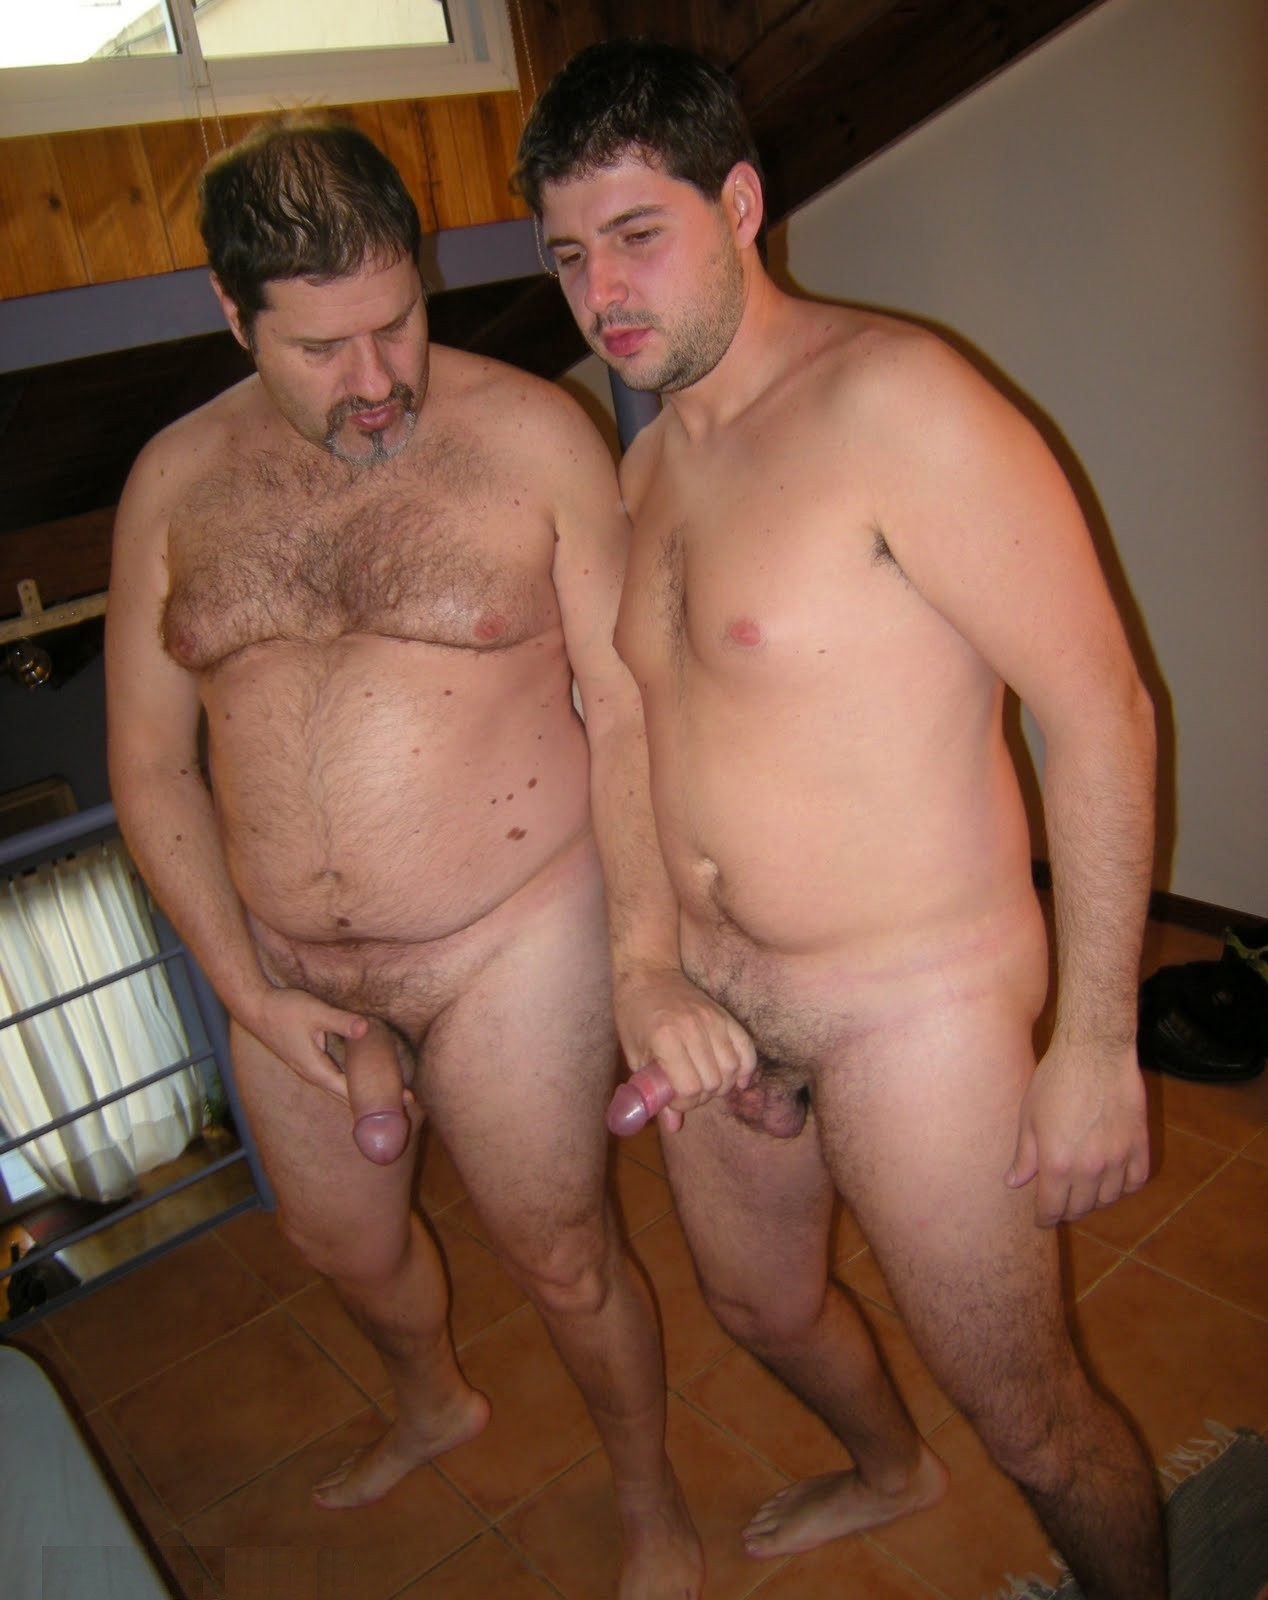 Sister and dad naked remarkable